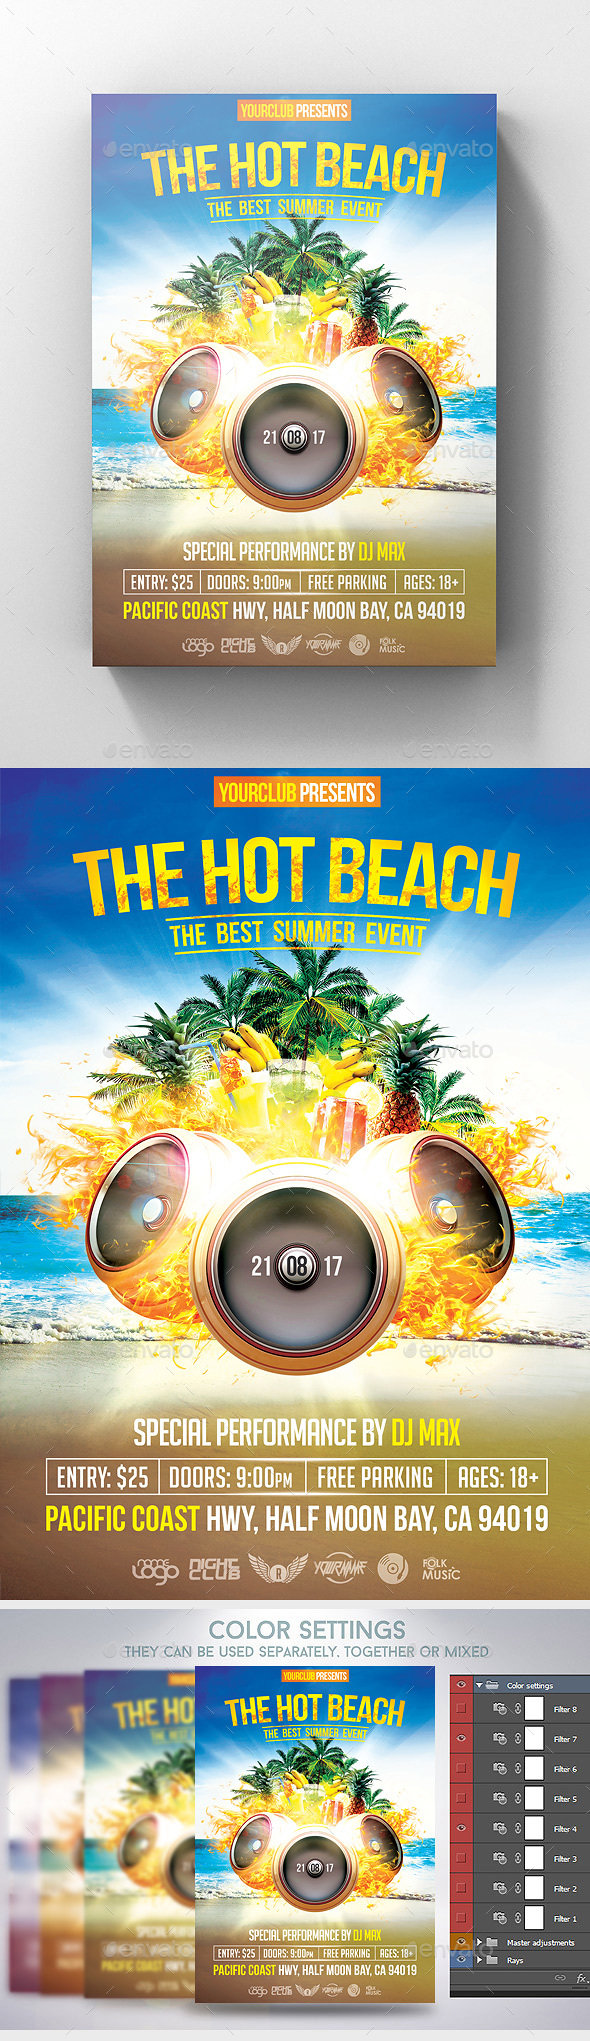 The Hot Beach Flyer - Clubs & Parties Events